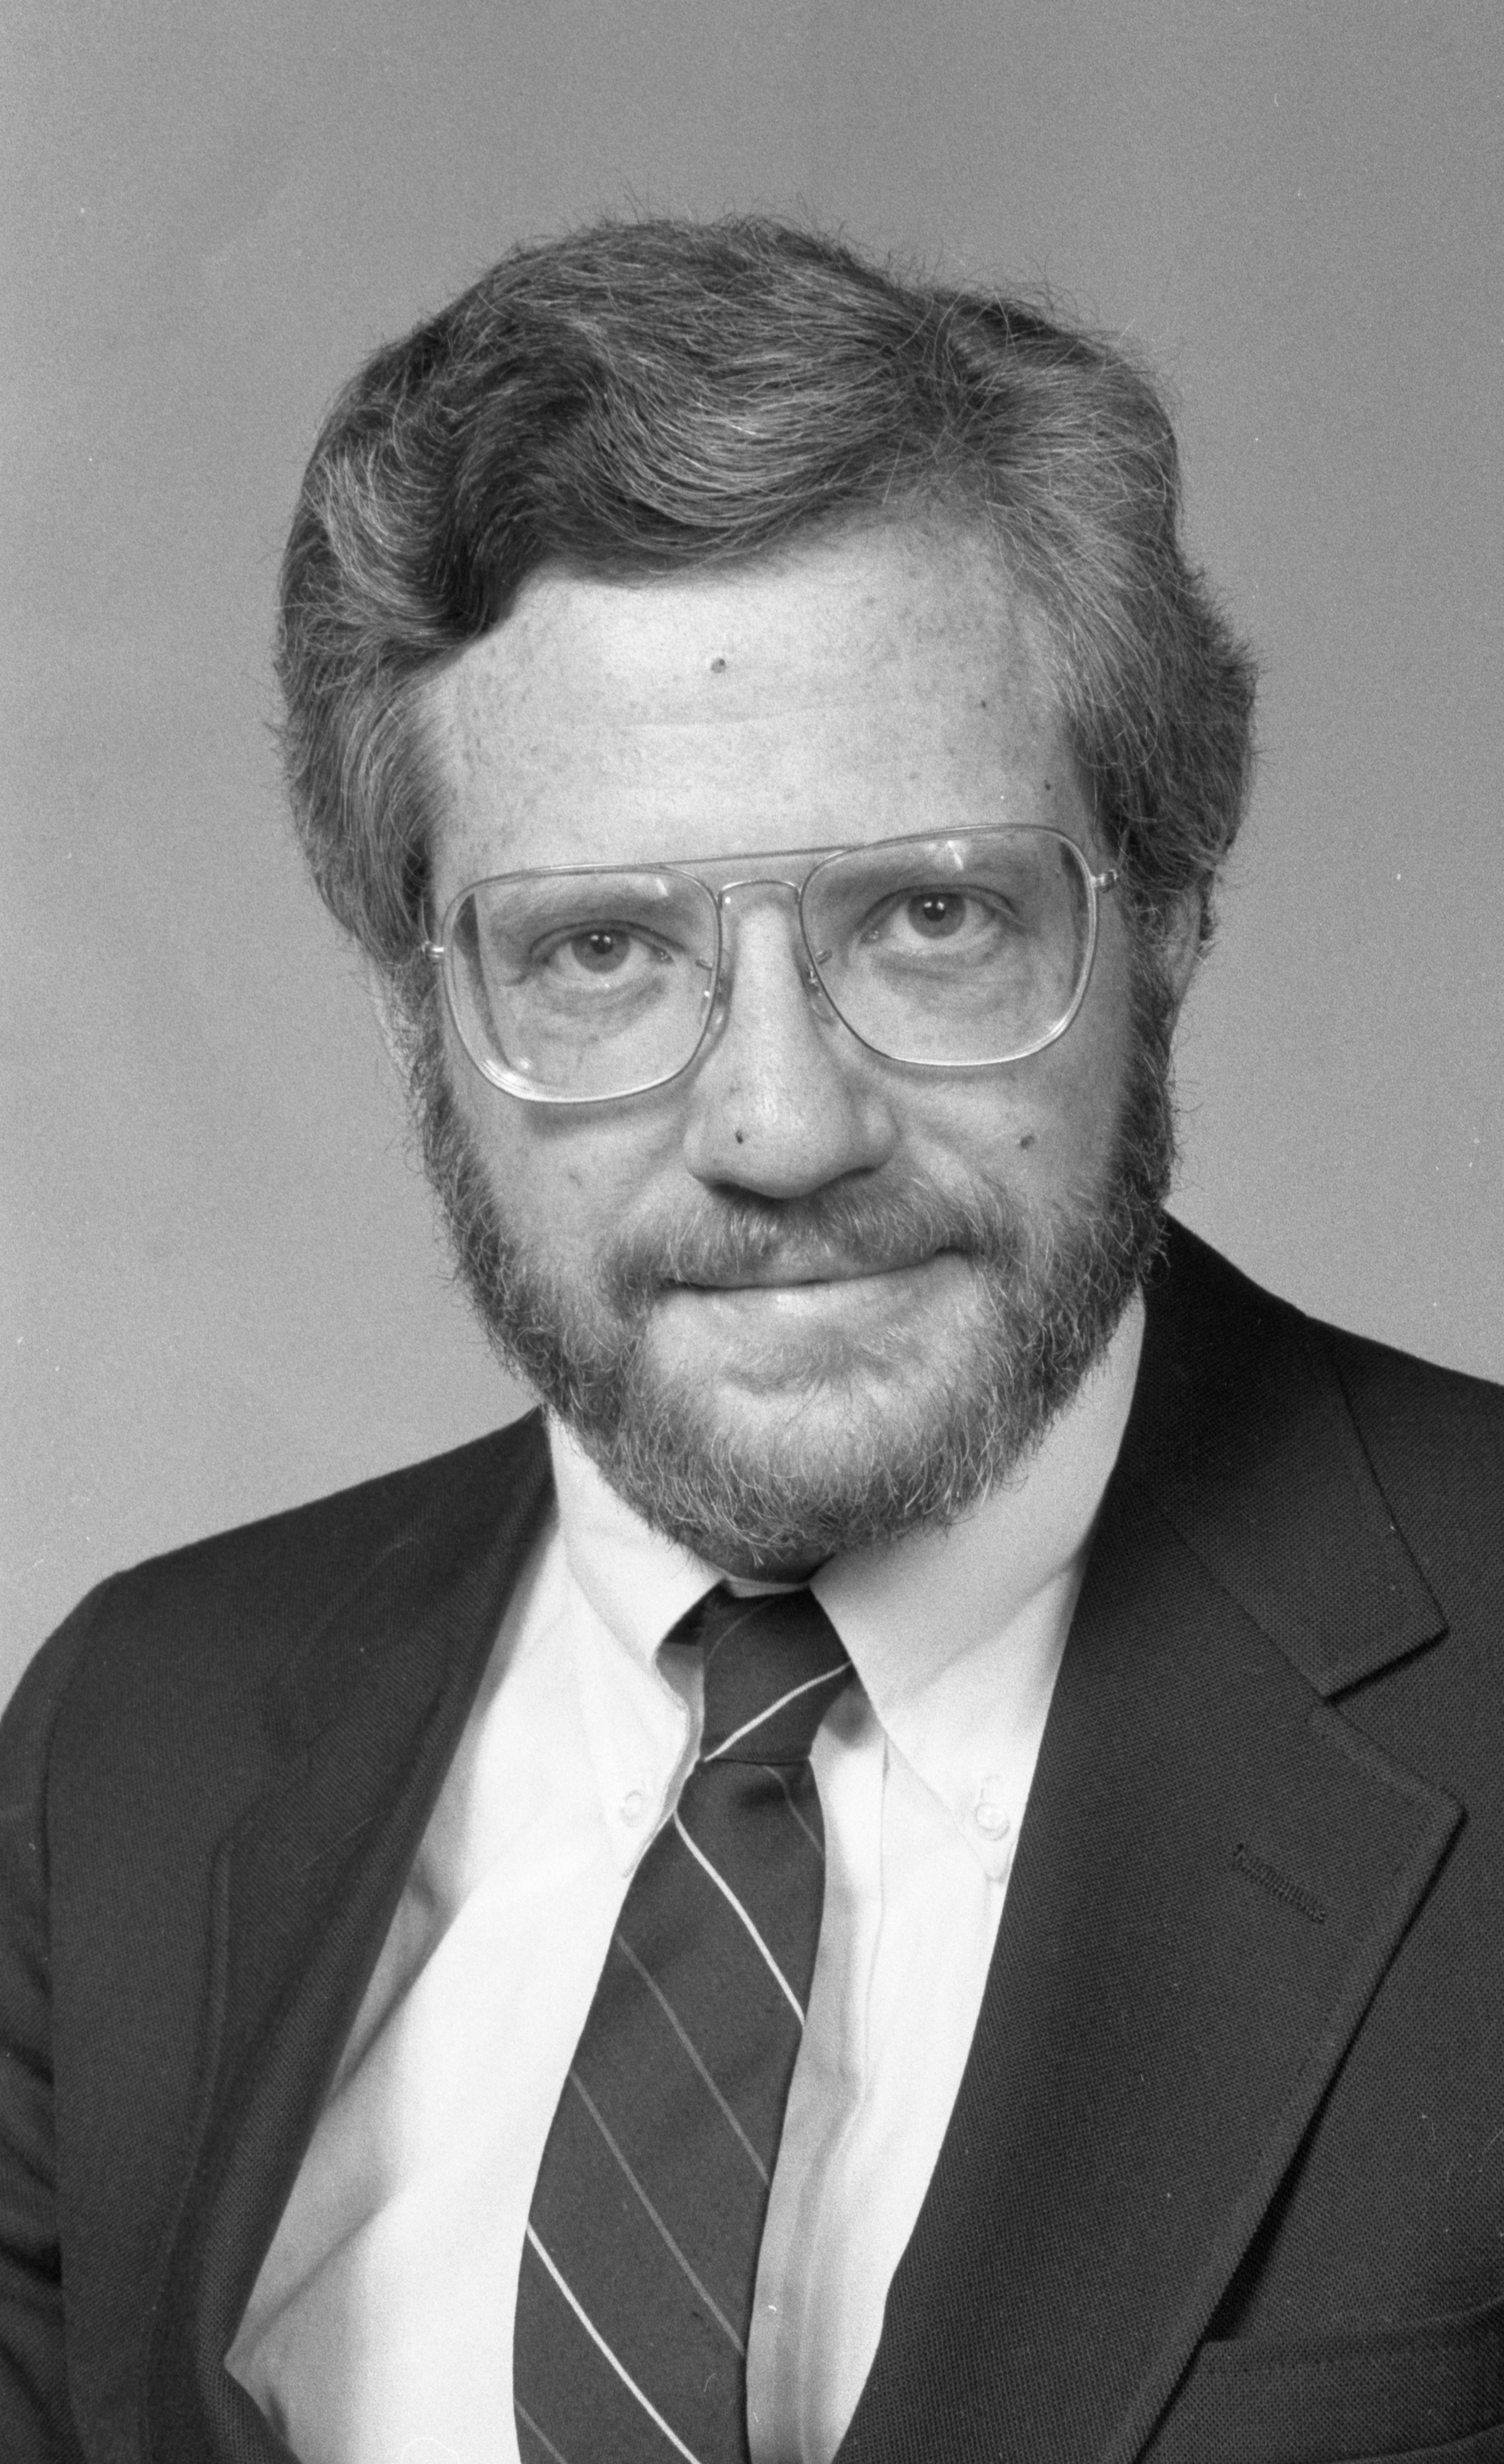 Tom Wieder - Attorney, July 1985 image